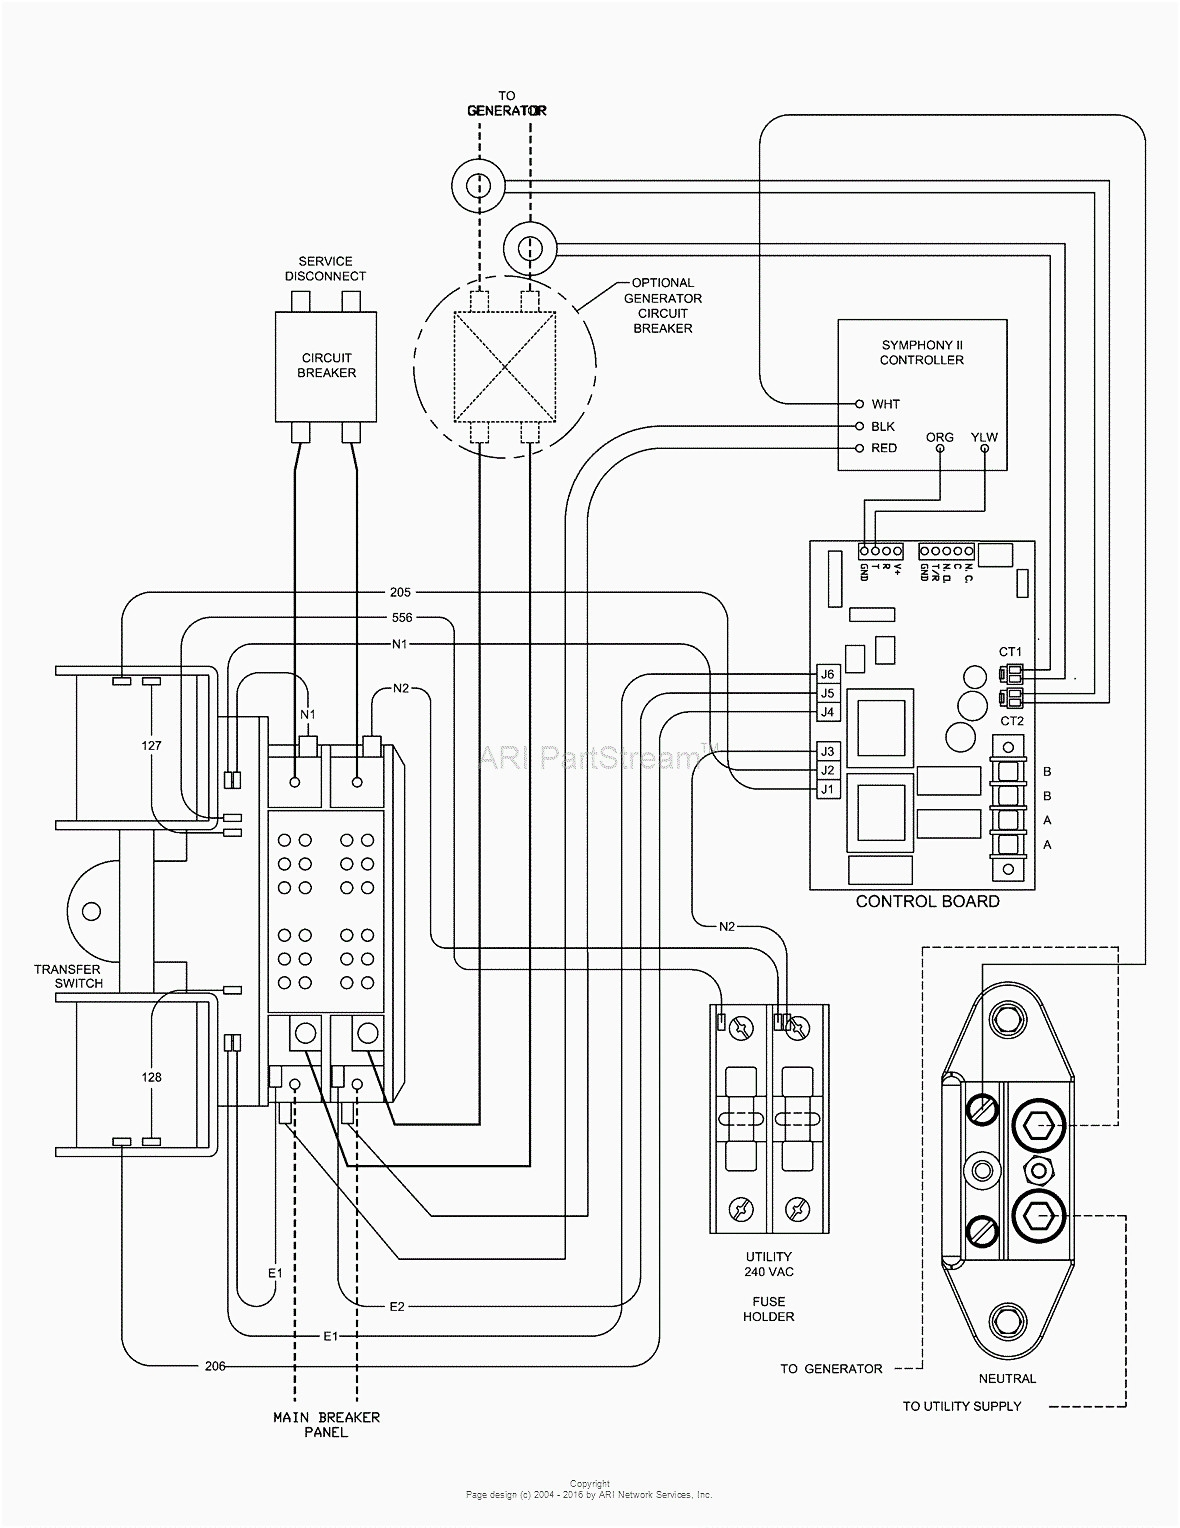 generac 200 amp transfer switch wiring diagram Collection-Generac 200 Amp Automatic Transfer Switch Wiring Diagram Generator Automatic Transfer Switch Wiring Diagram Generac 4-h